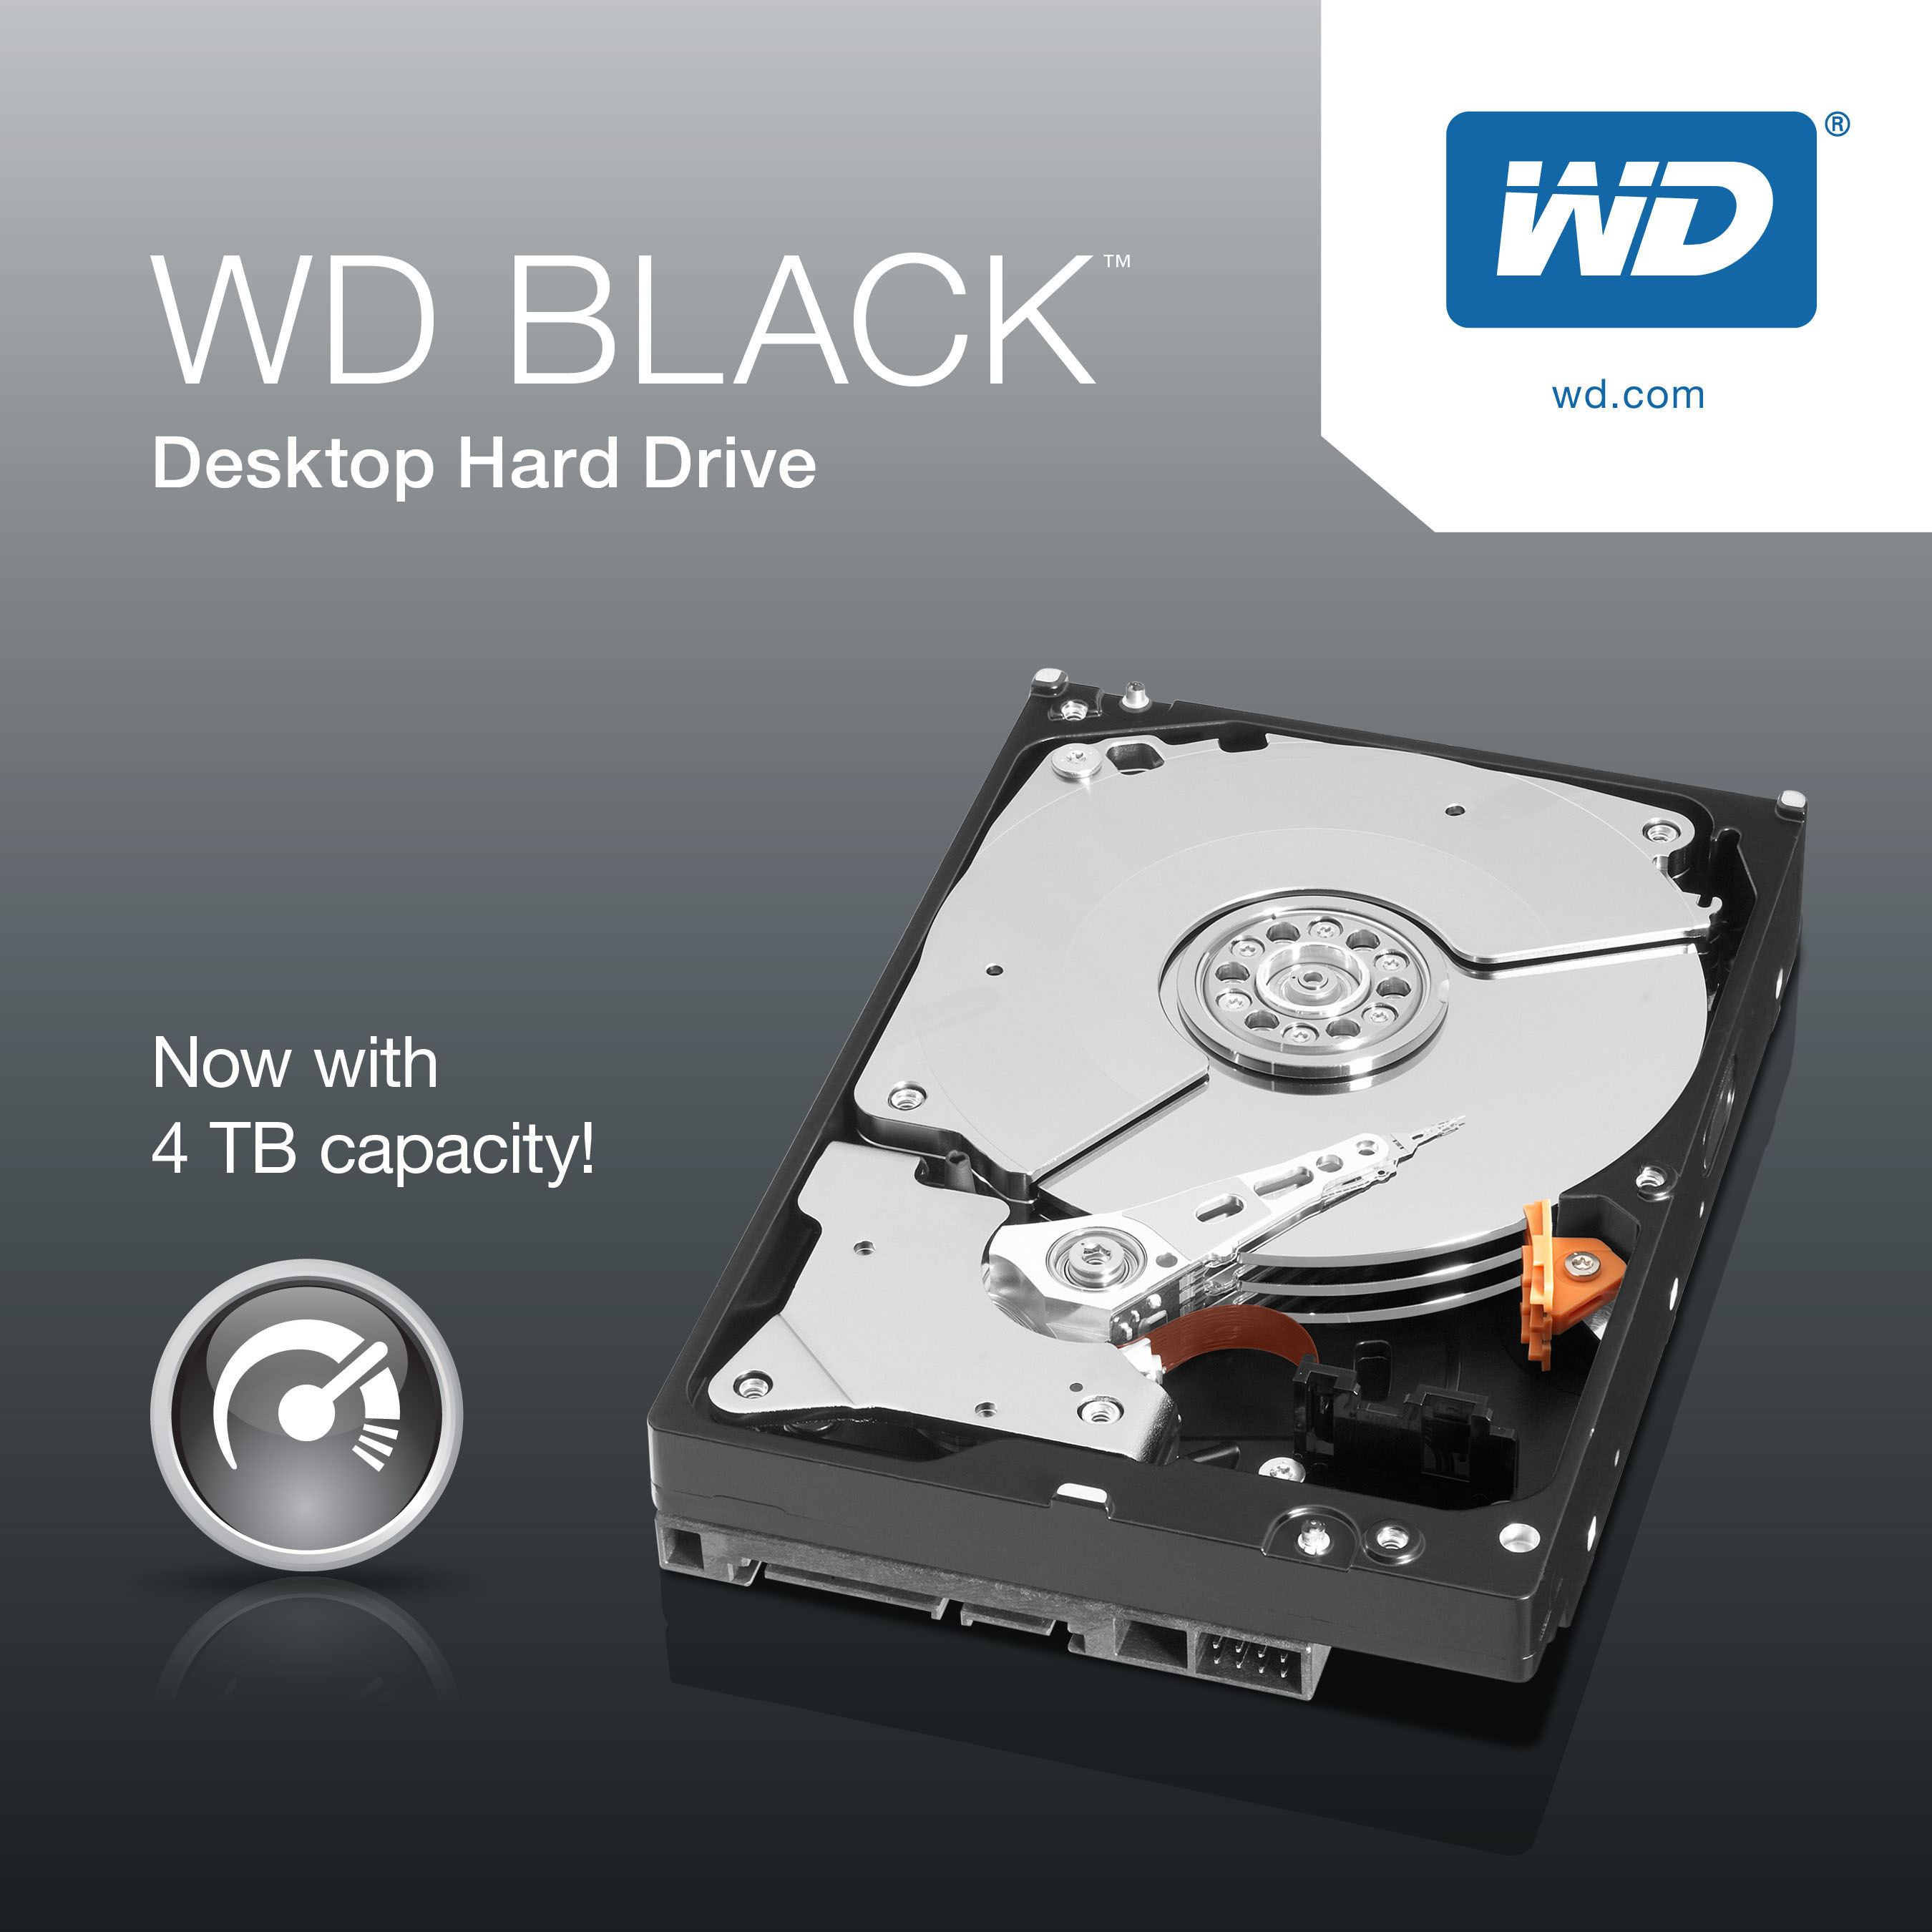 WD now ships the WD Black, which offers high performance and 4TB of storage space.